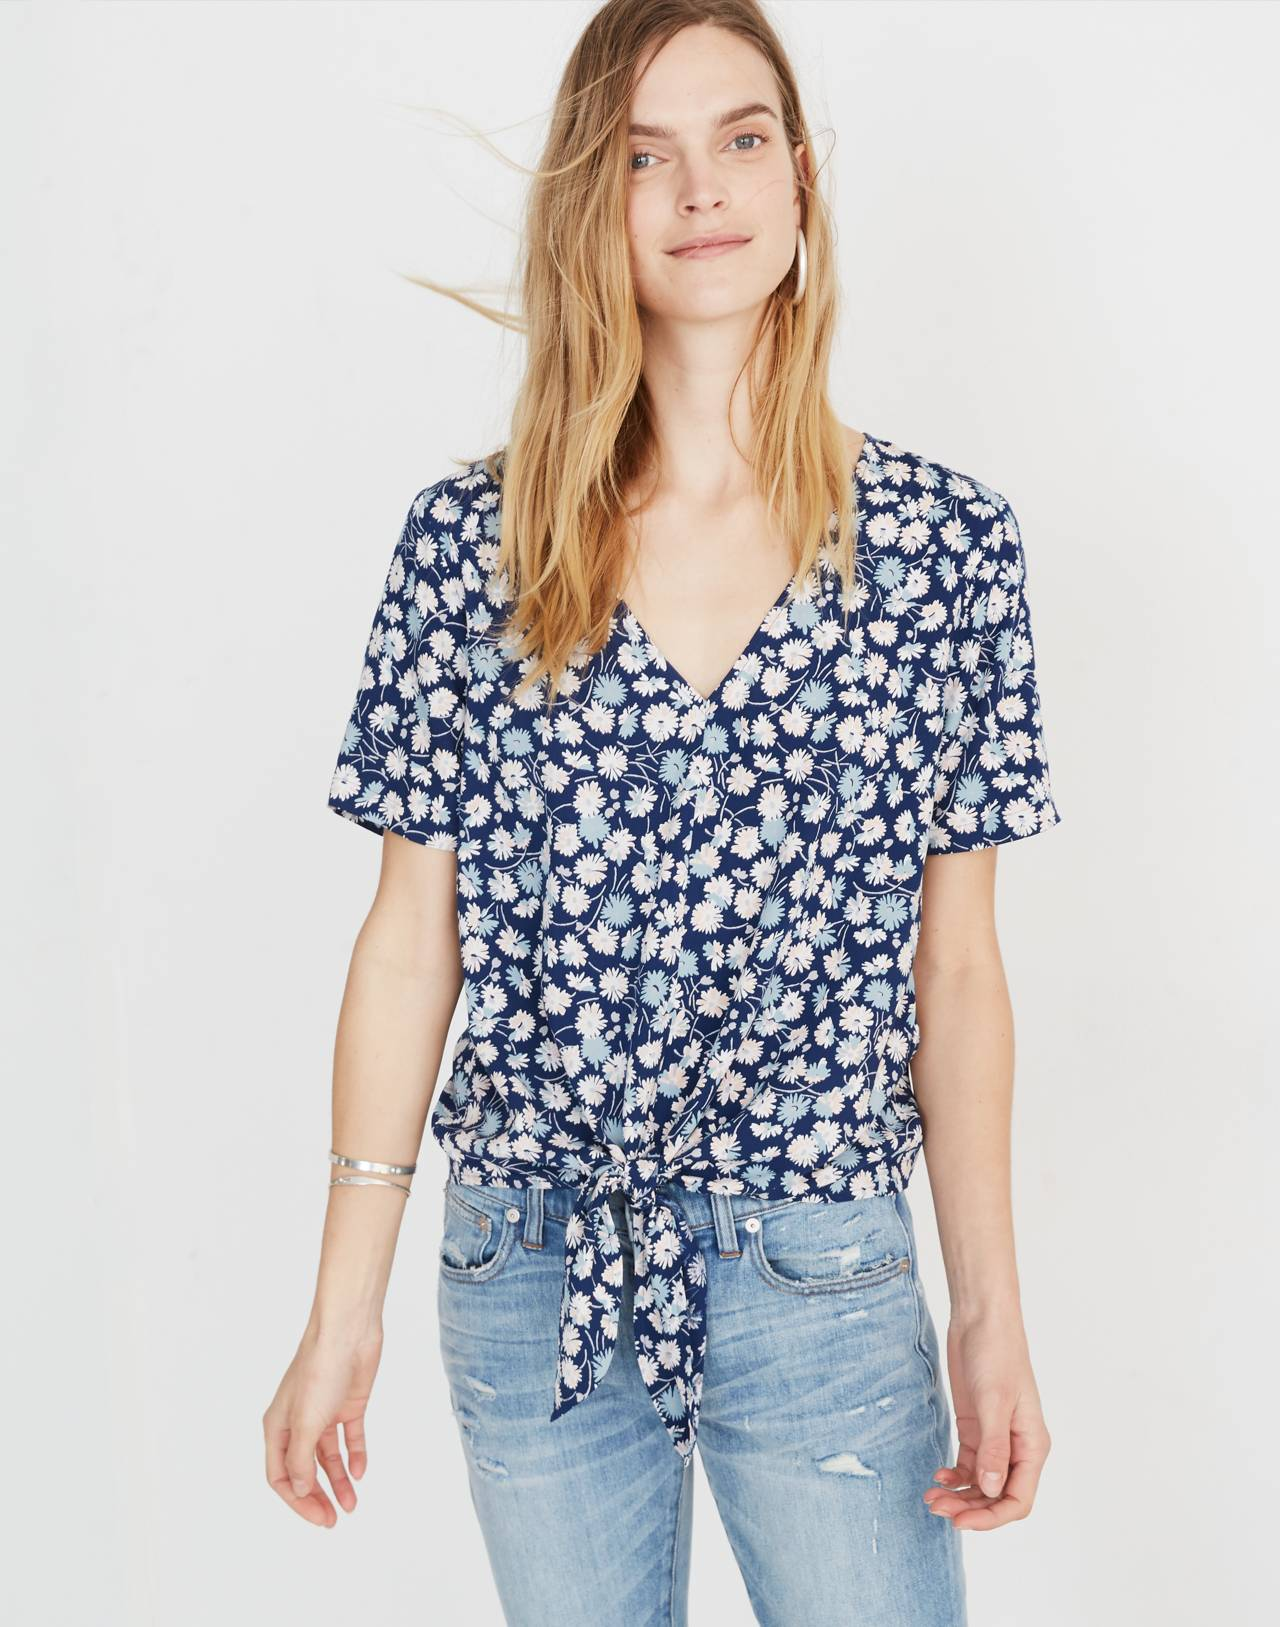 Novel Tie-Front Top in French Floral in french floral blue moon image 1